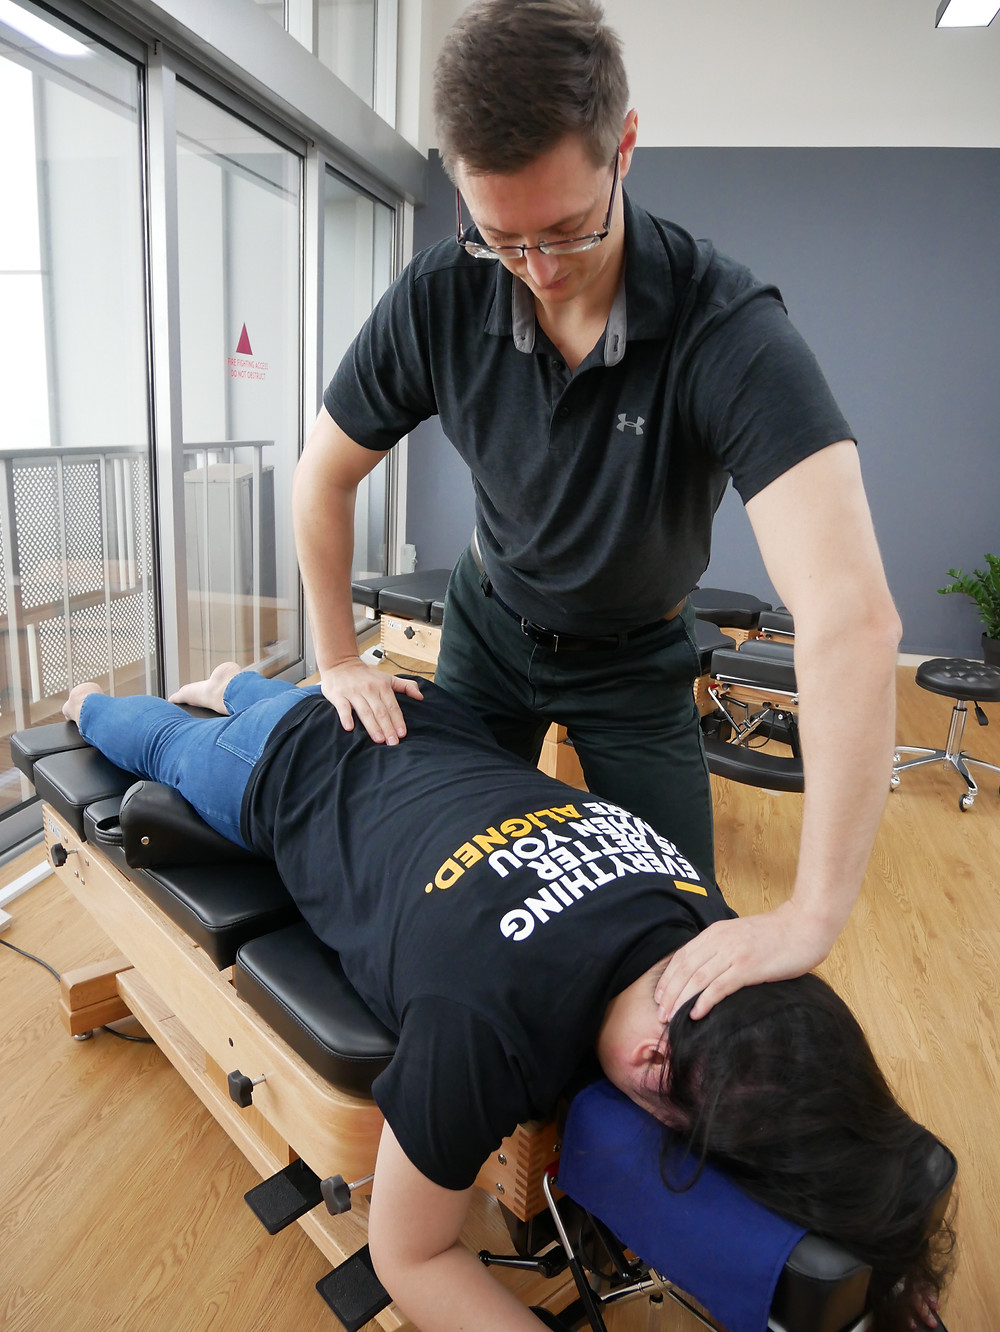 Dr Jason | Align Chiropractic